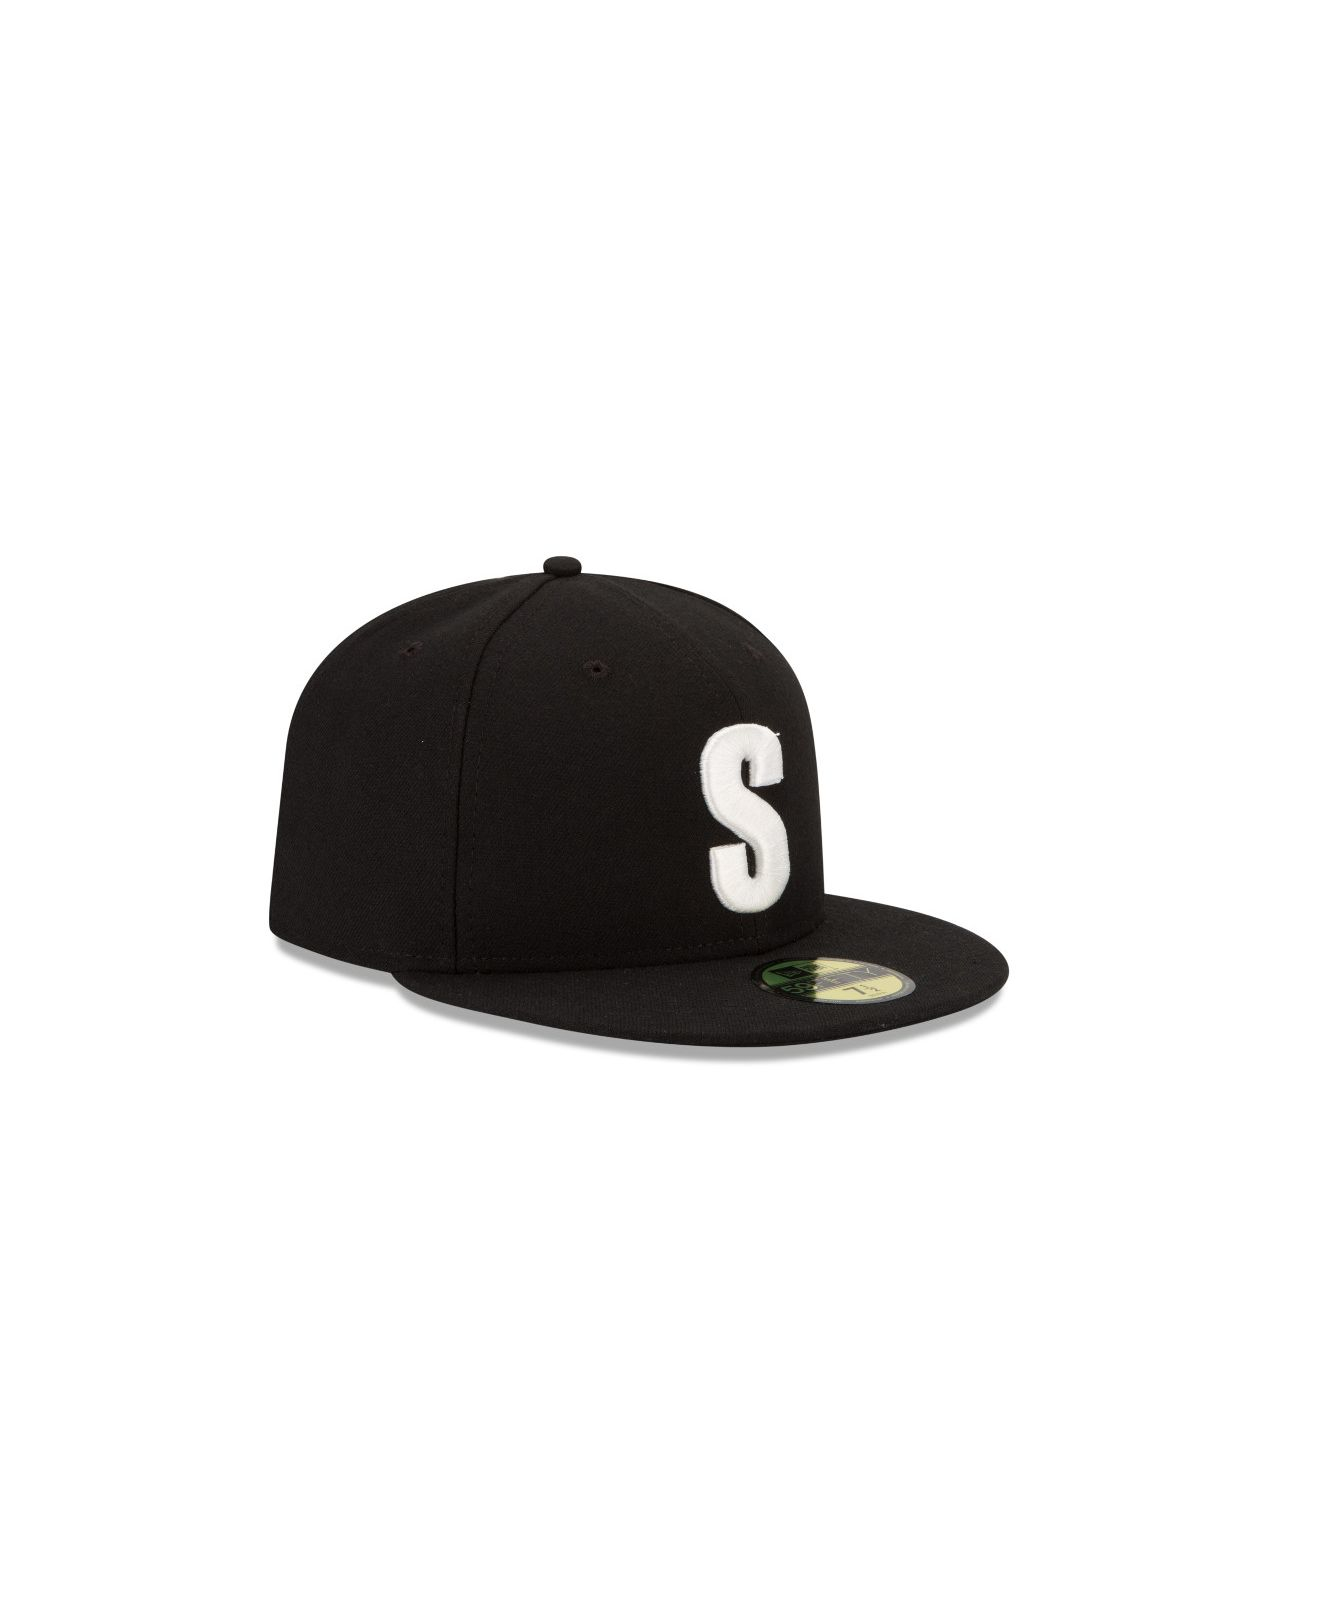 newest collection ea180 e58e4 KTZ Seattle Mariners Steelheads Special Event On-field 59fifty Cap ...